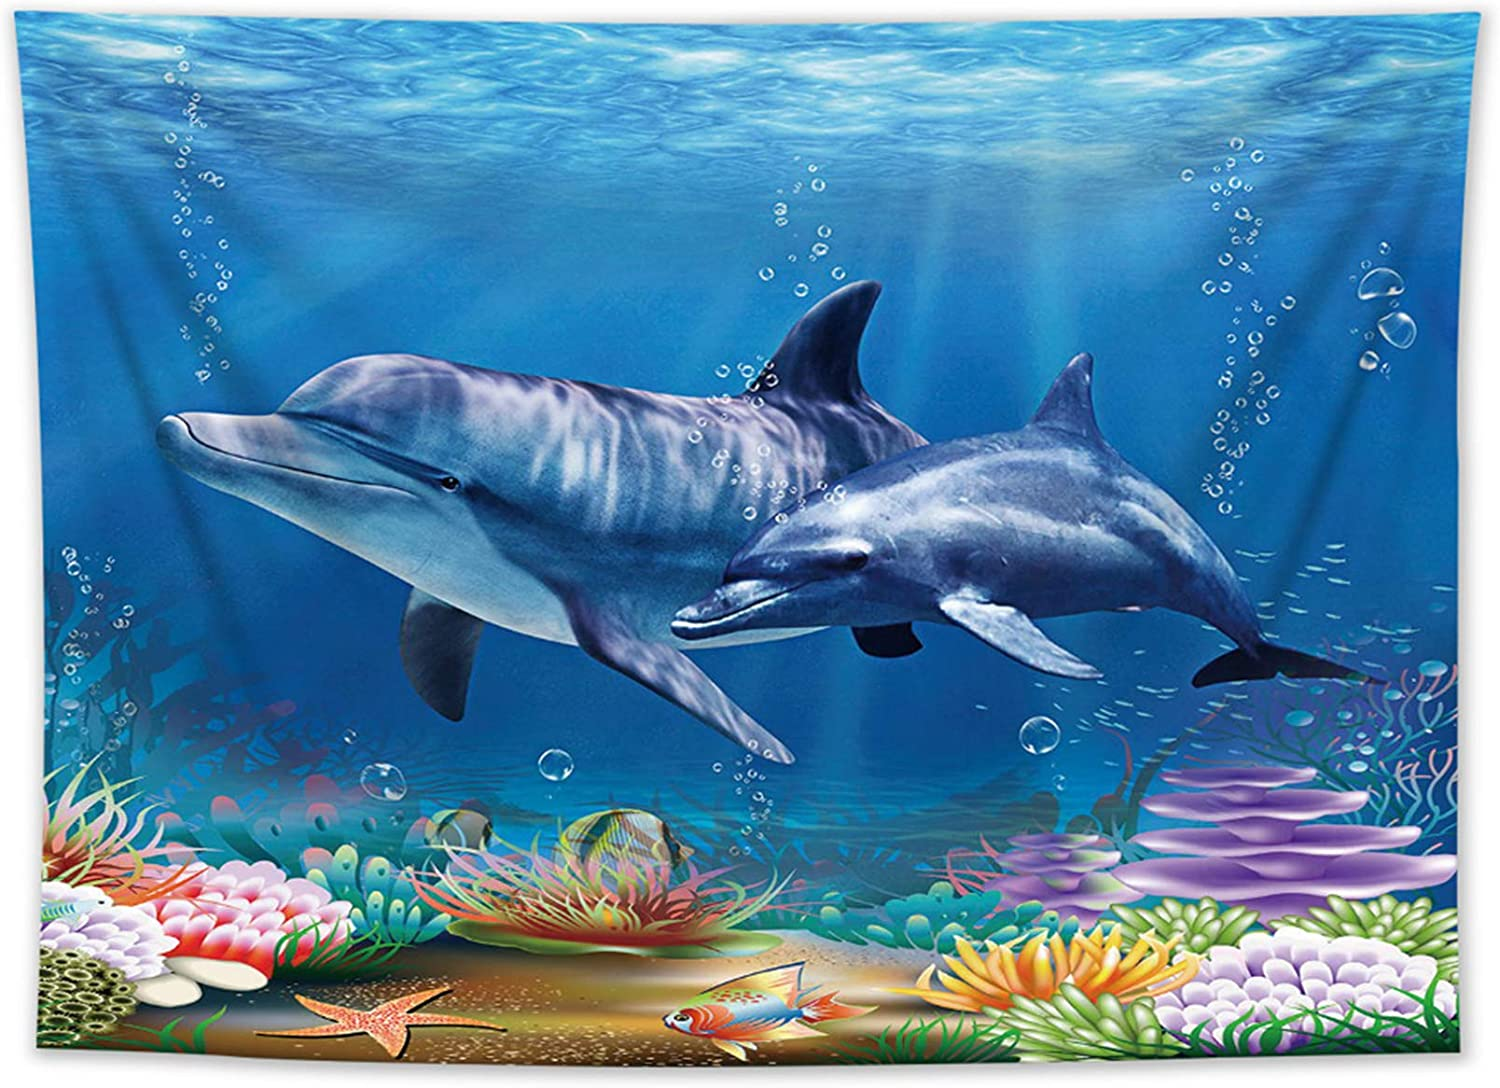 HVEST Dolphin Tapestry Blue Ocean Coral Reef Tapestry Wall Hanging Underwater World Dolphin Tapestry For Living Room Bedroom Kids Room College Dorm Wall Hanging Blanket Home Decoration, 60x40 inches